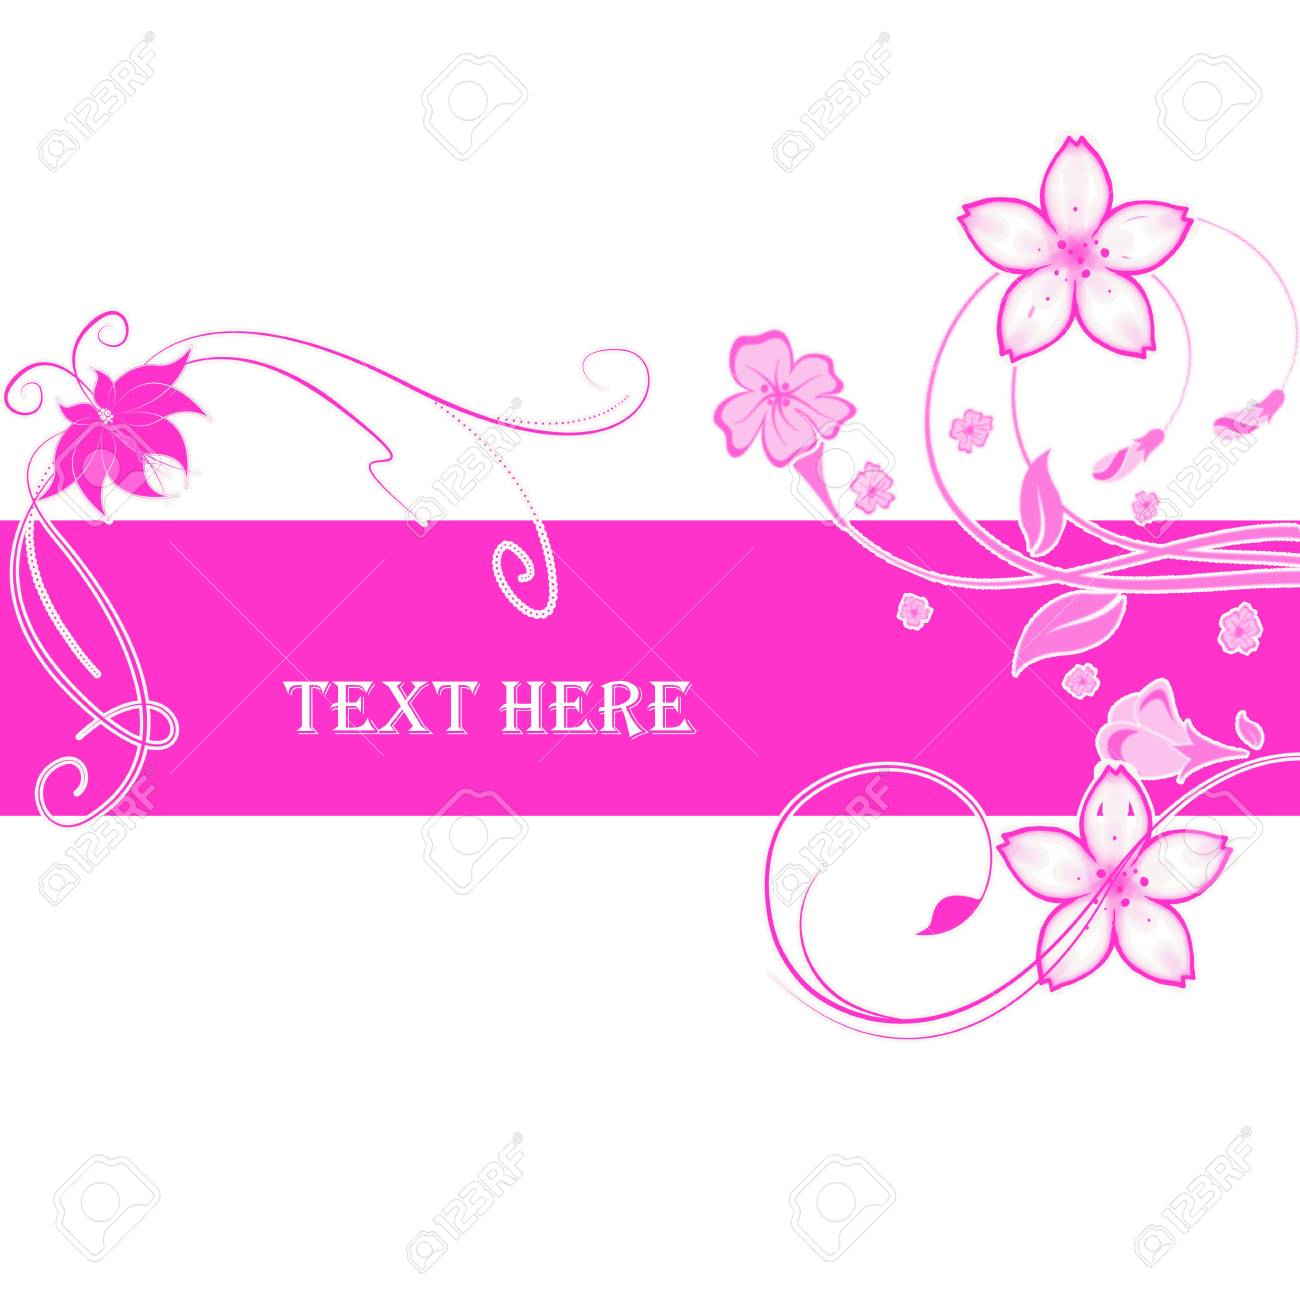 Abstract flowers with place for text Stock Photo - 6839783